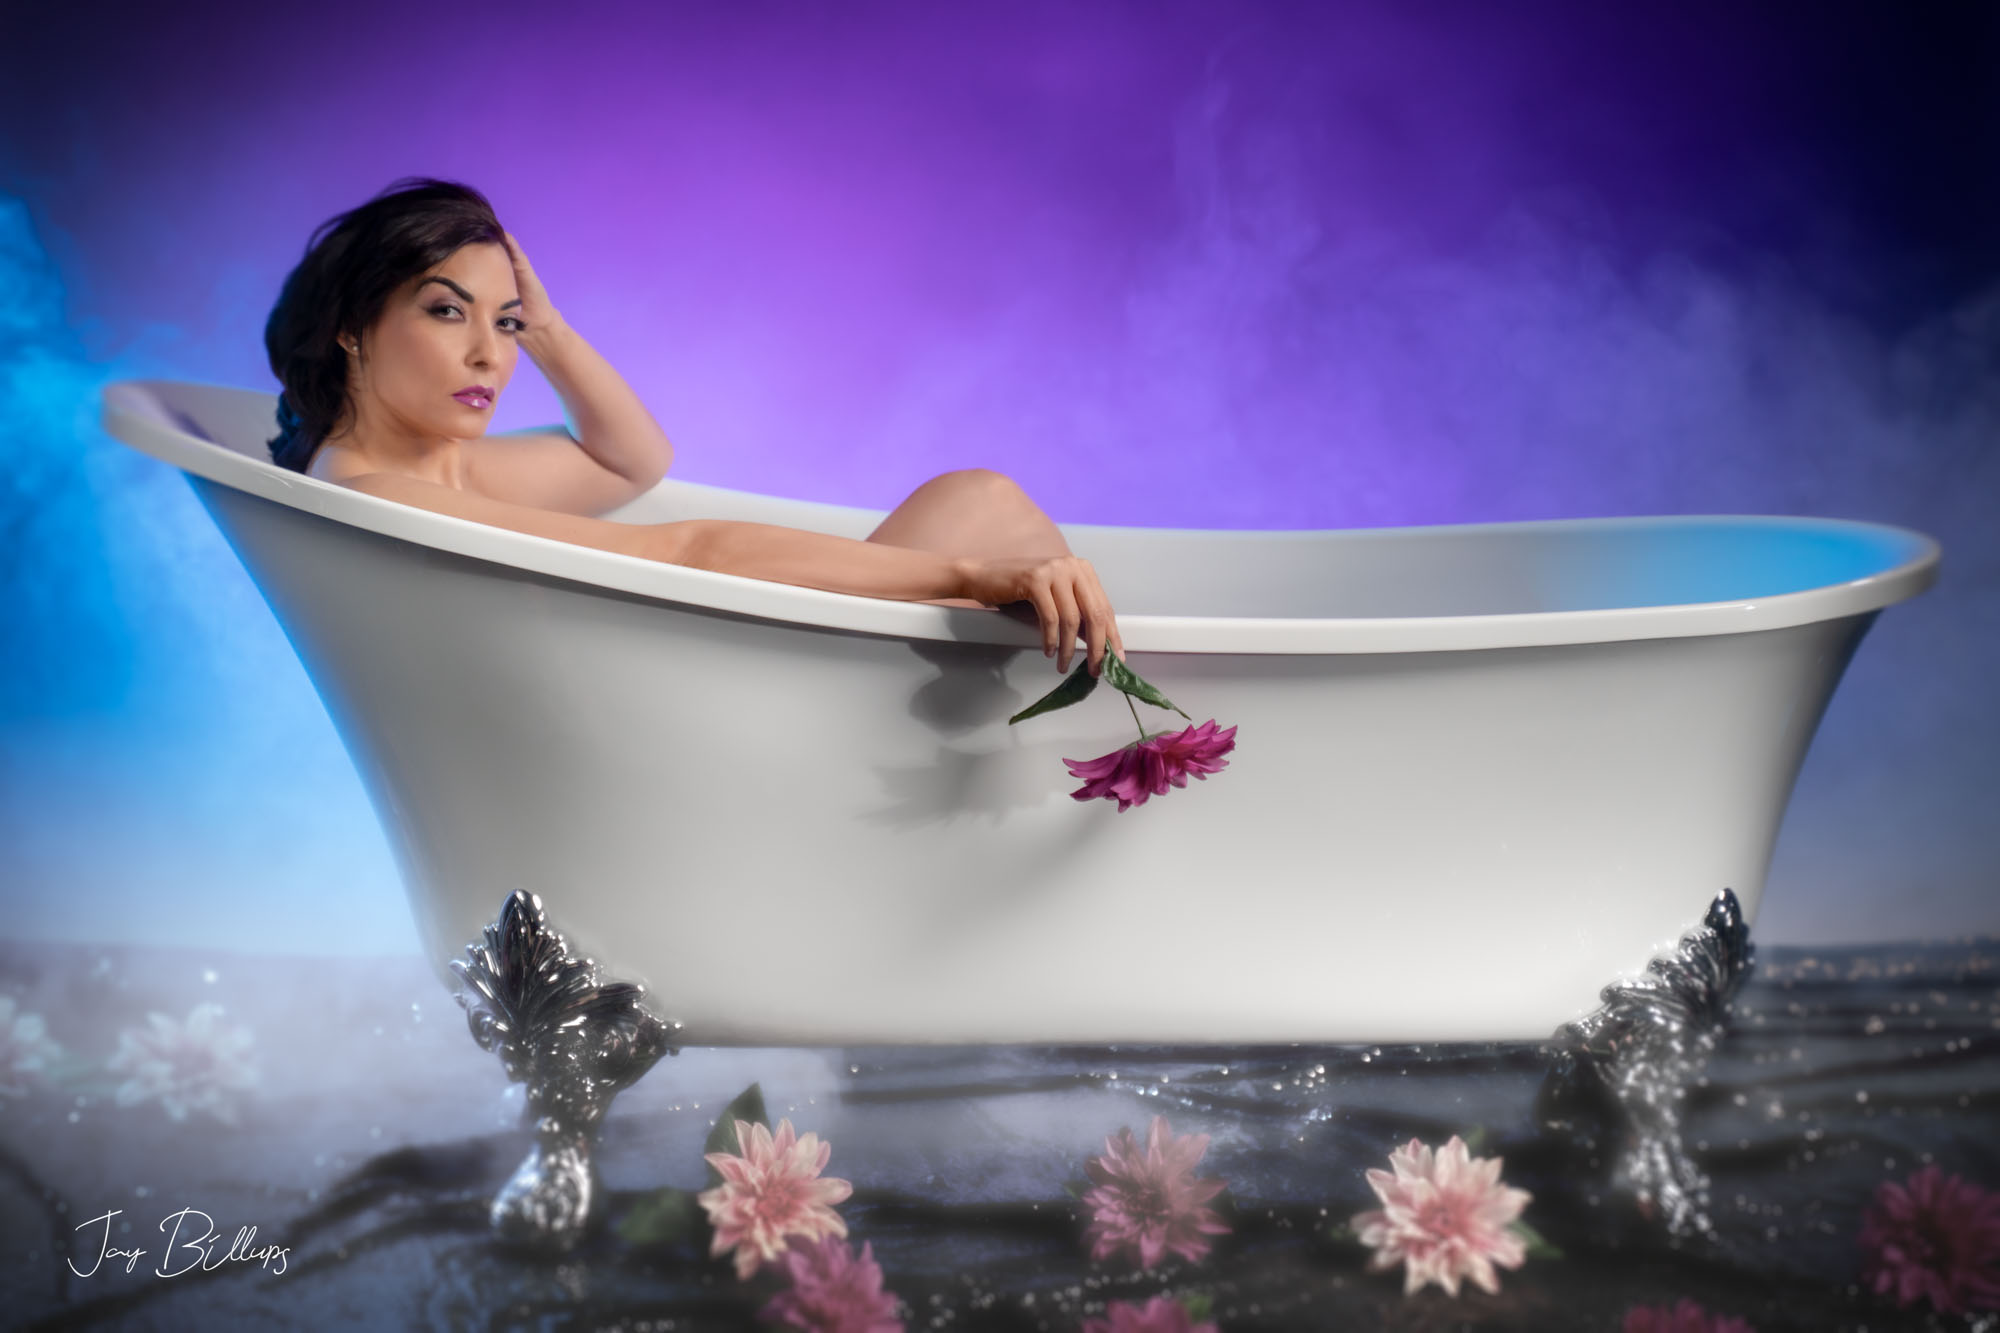 Latina in a clawfoot tub posing for boudoir